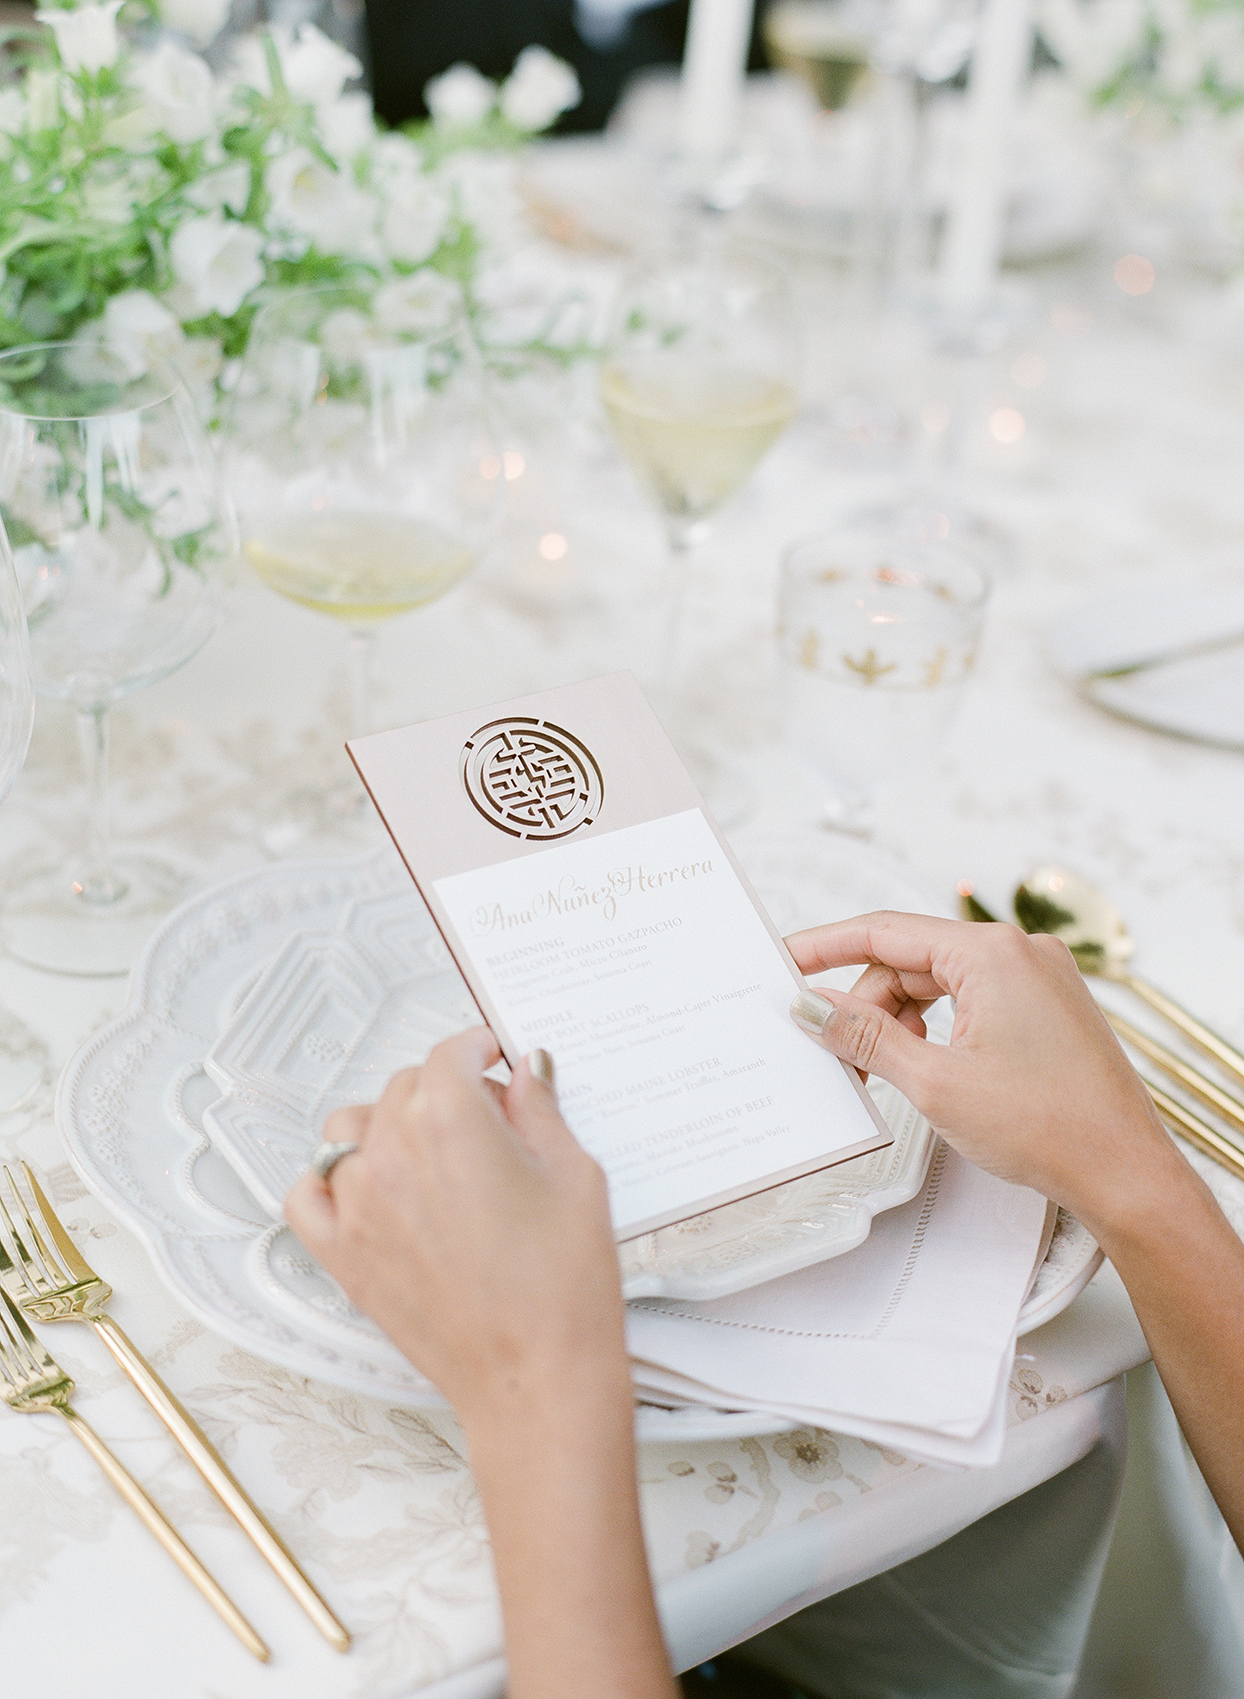 Wedding reception place settings with plates with scalloped edges